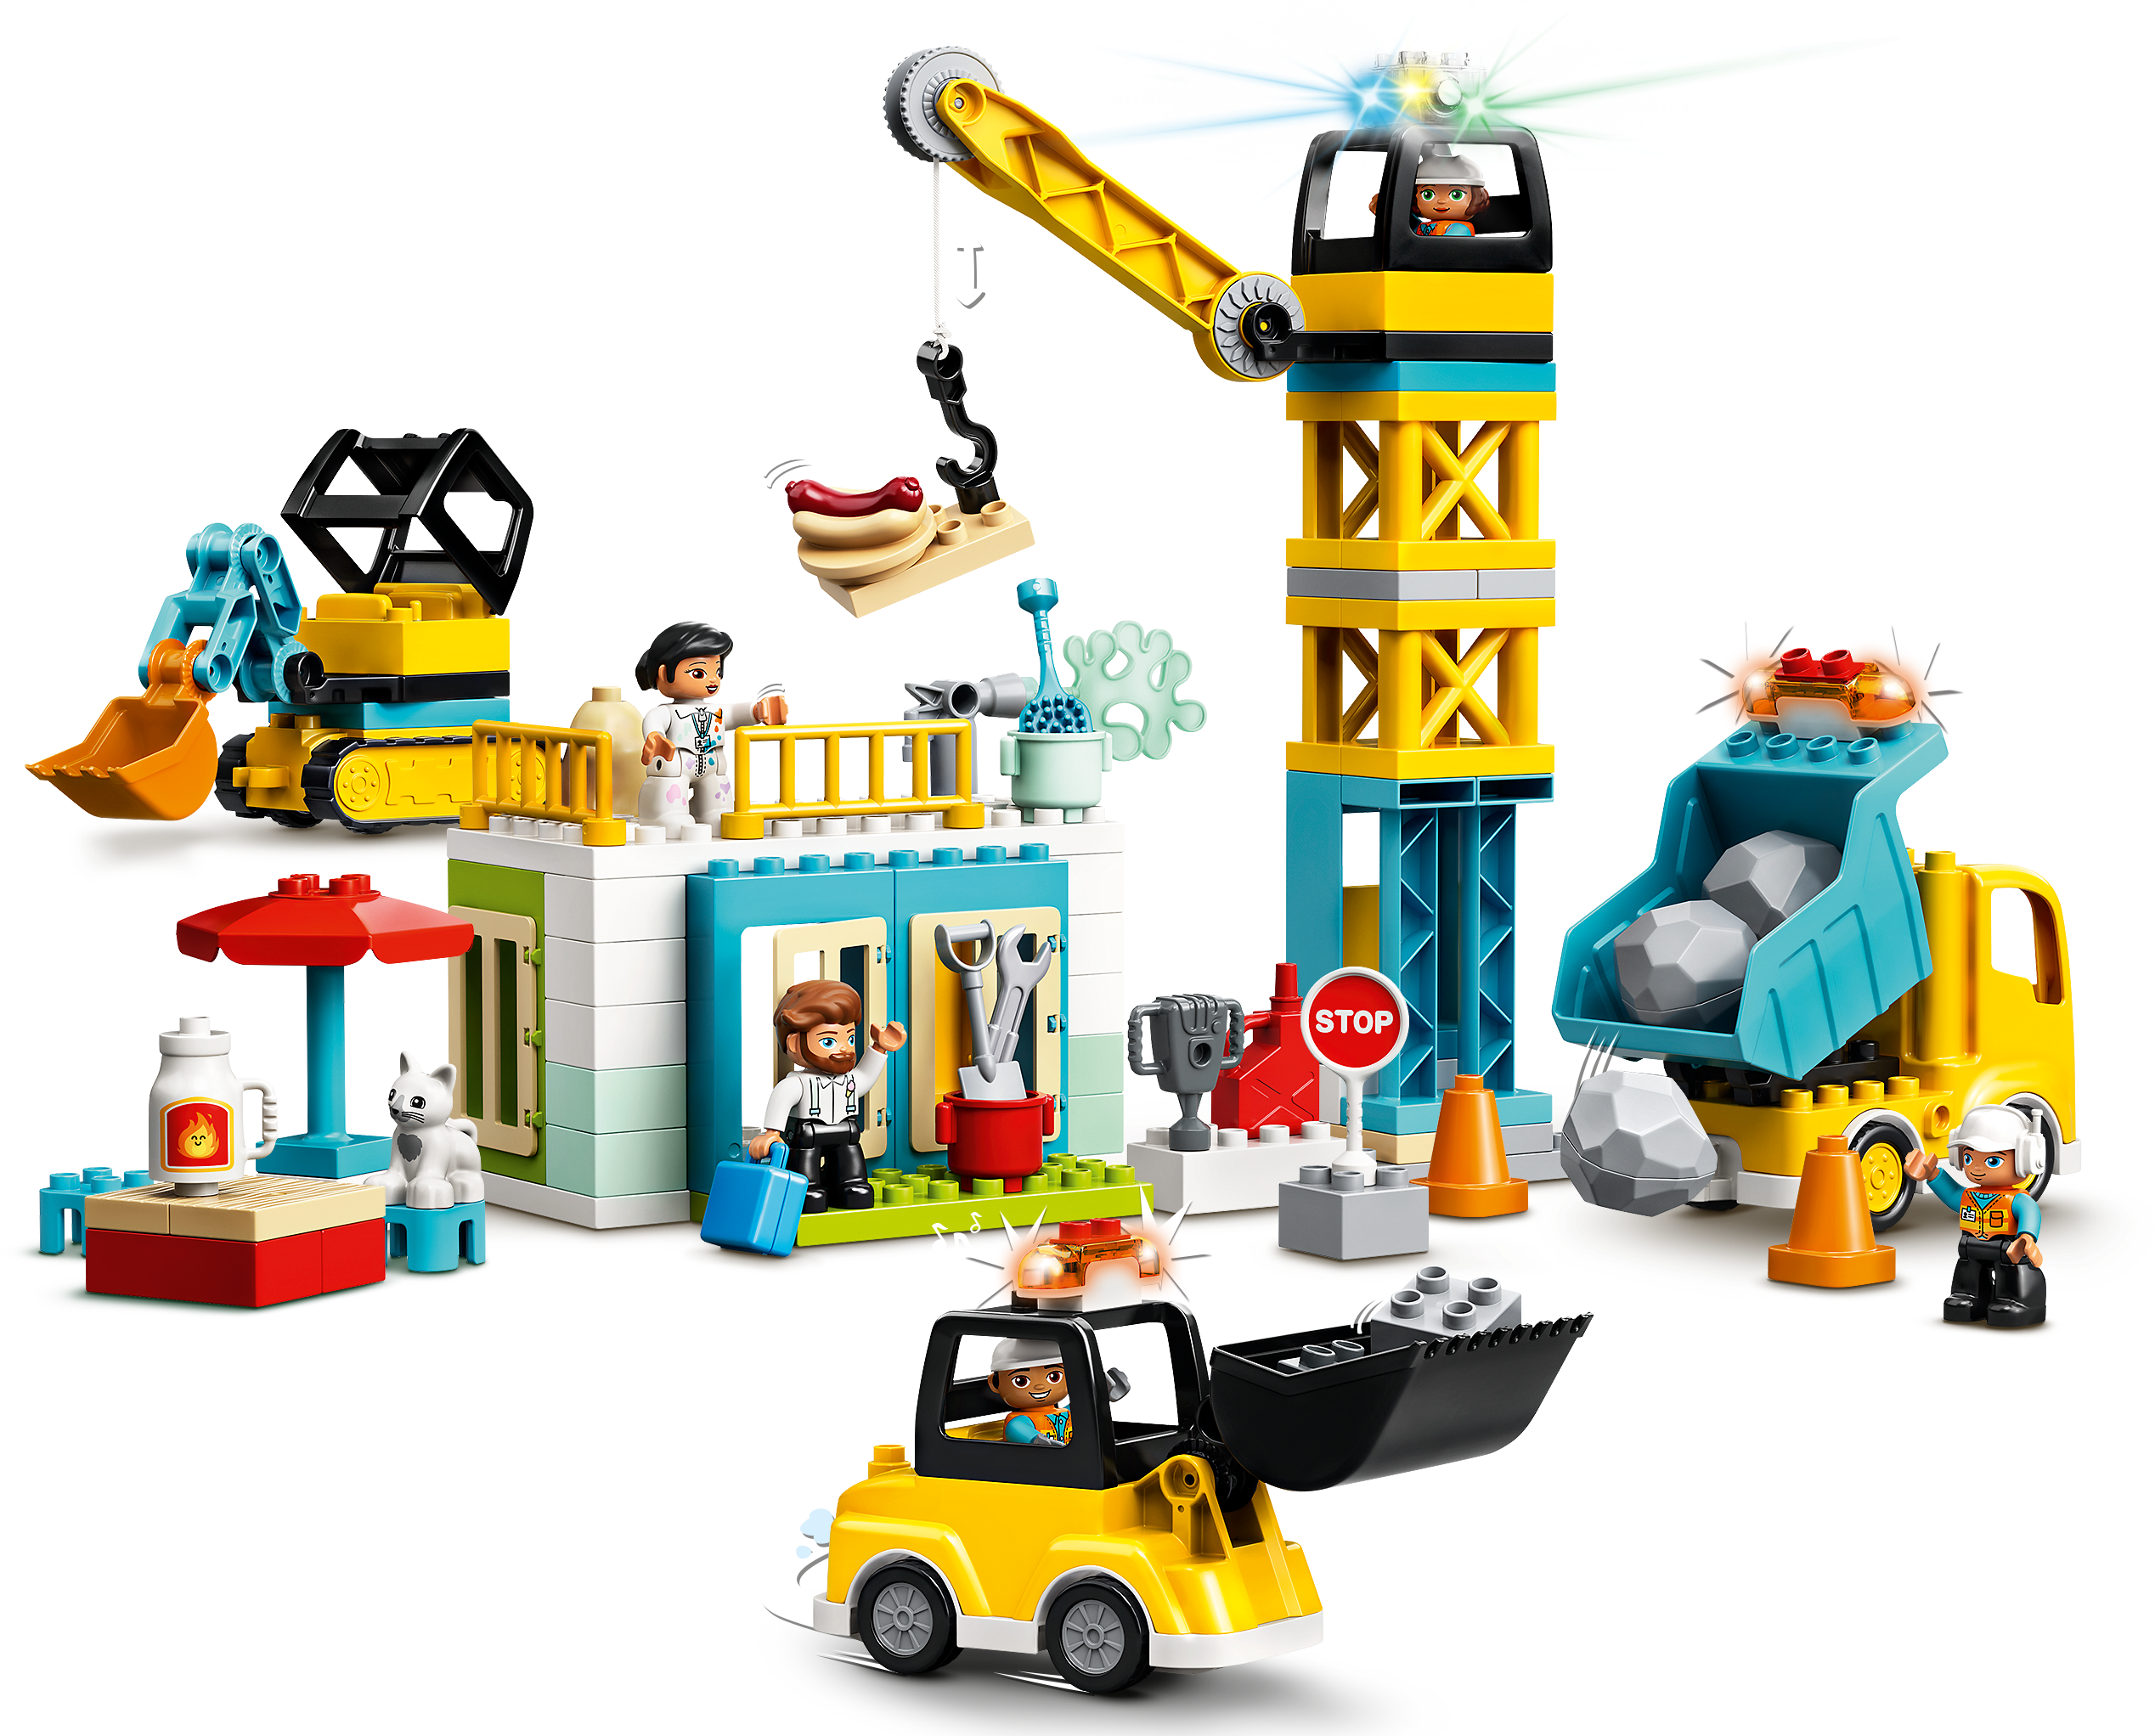 Lego Duplo - Tower and crane construction